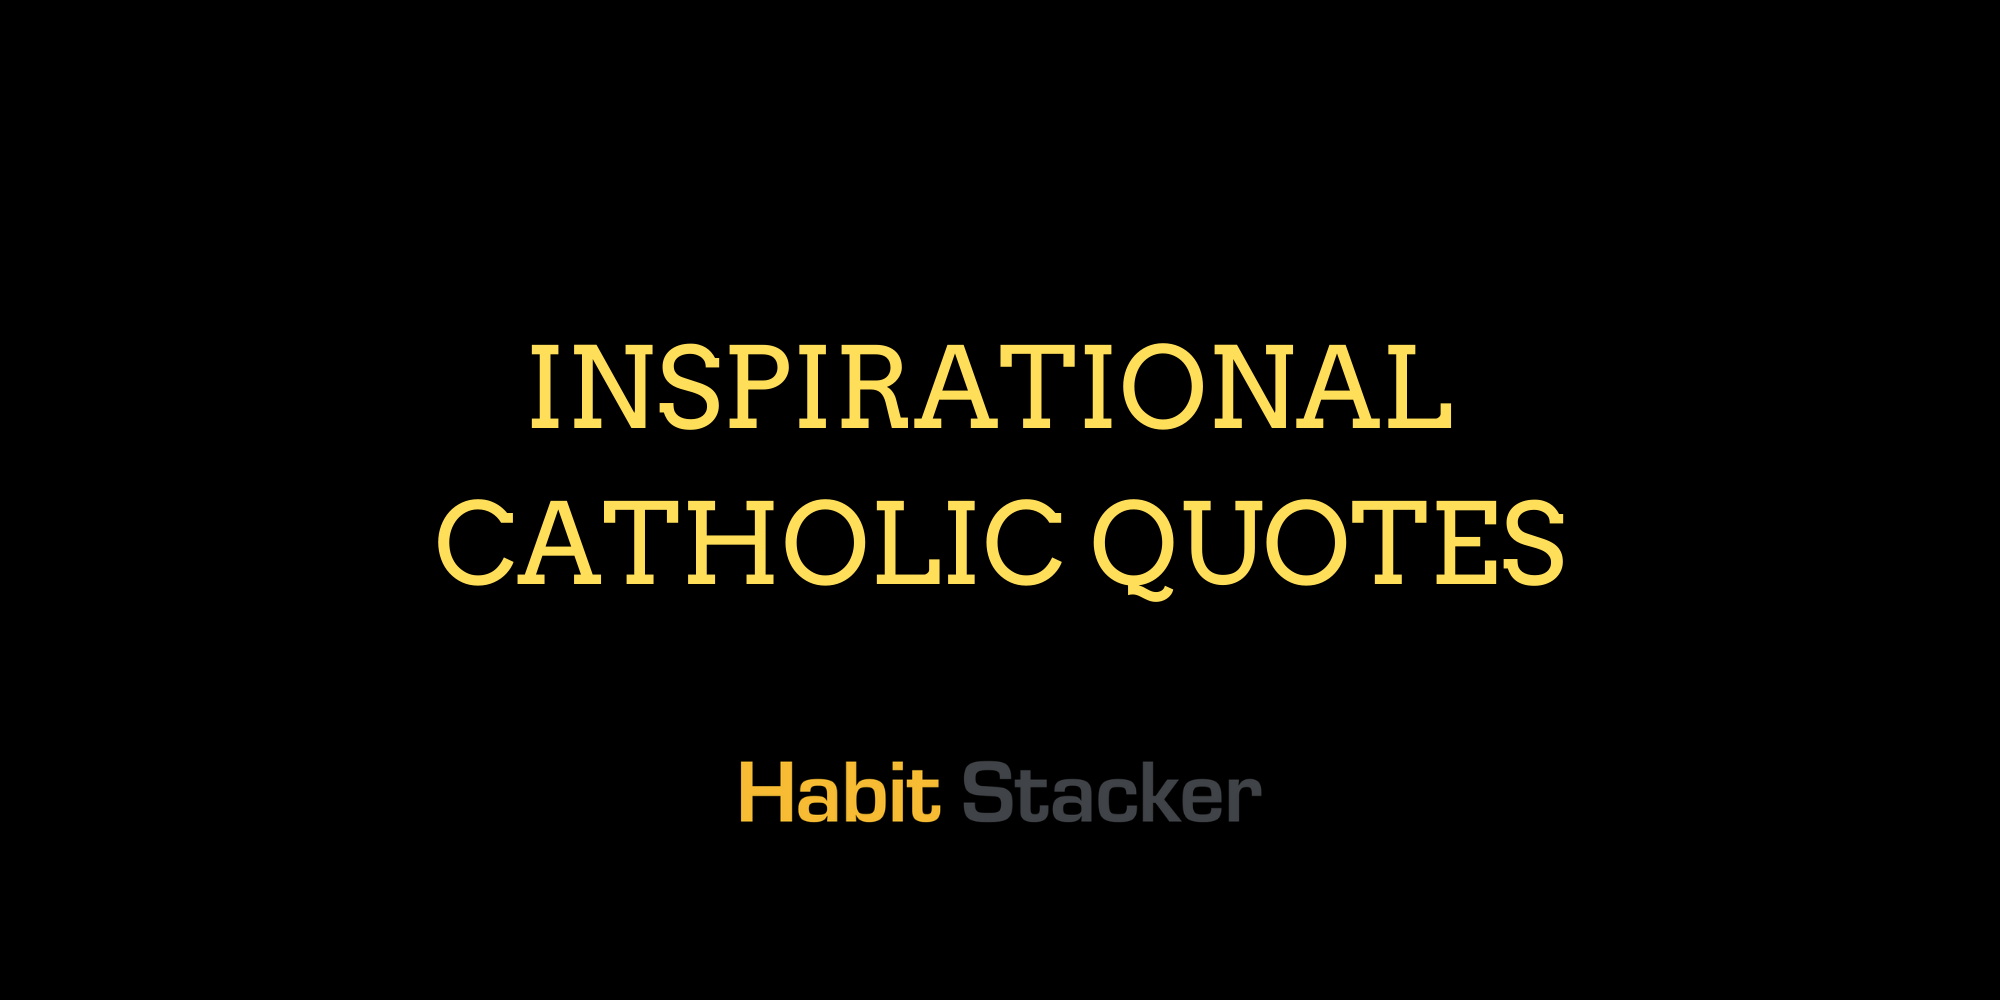 Inspirational Catholic Quotes